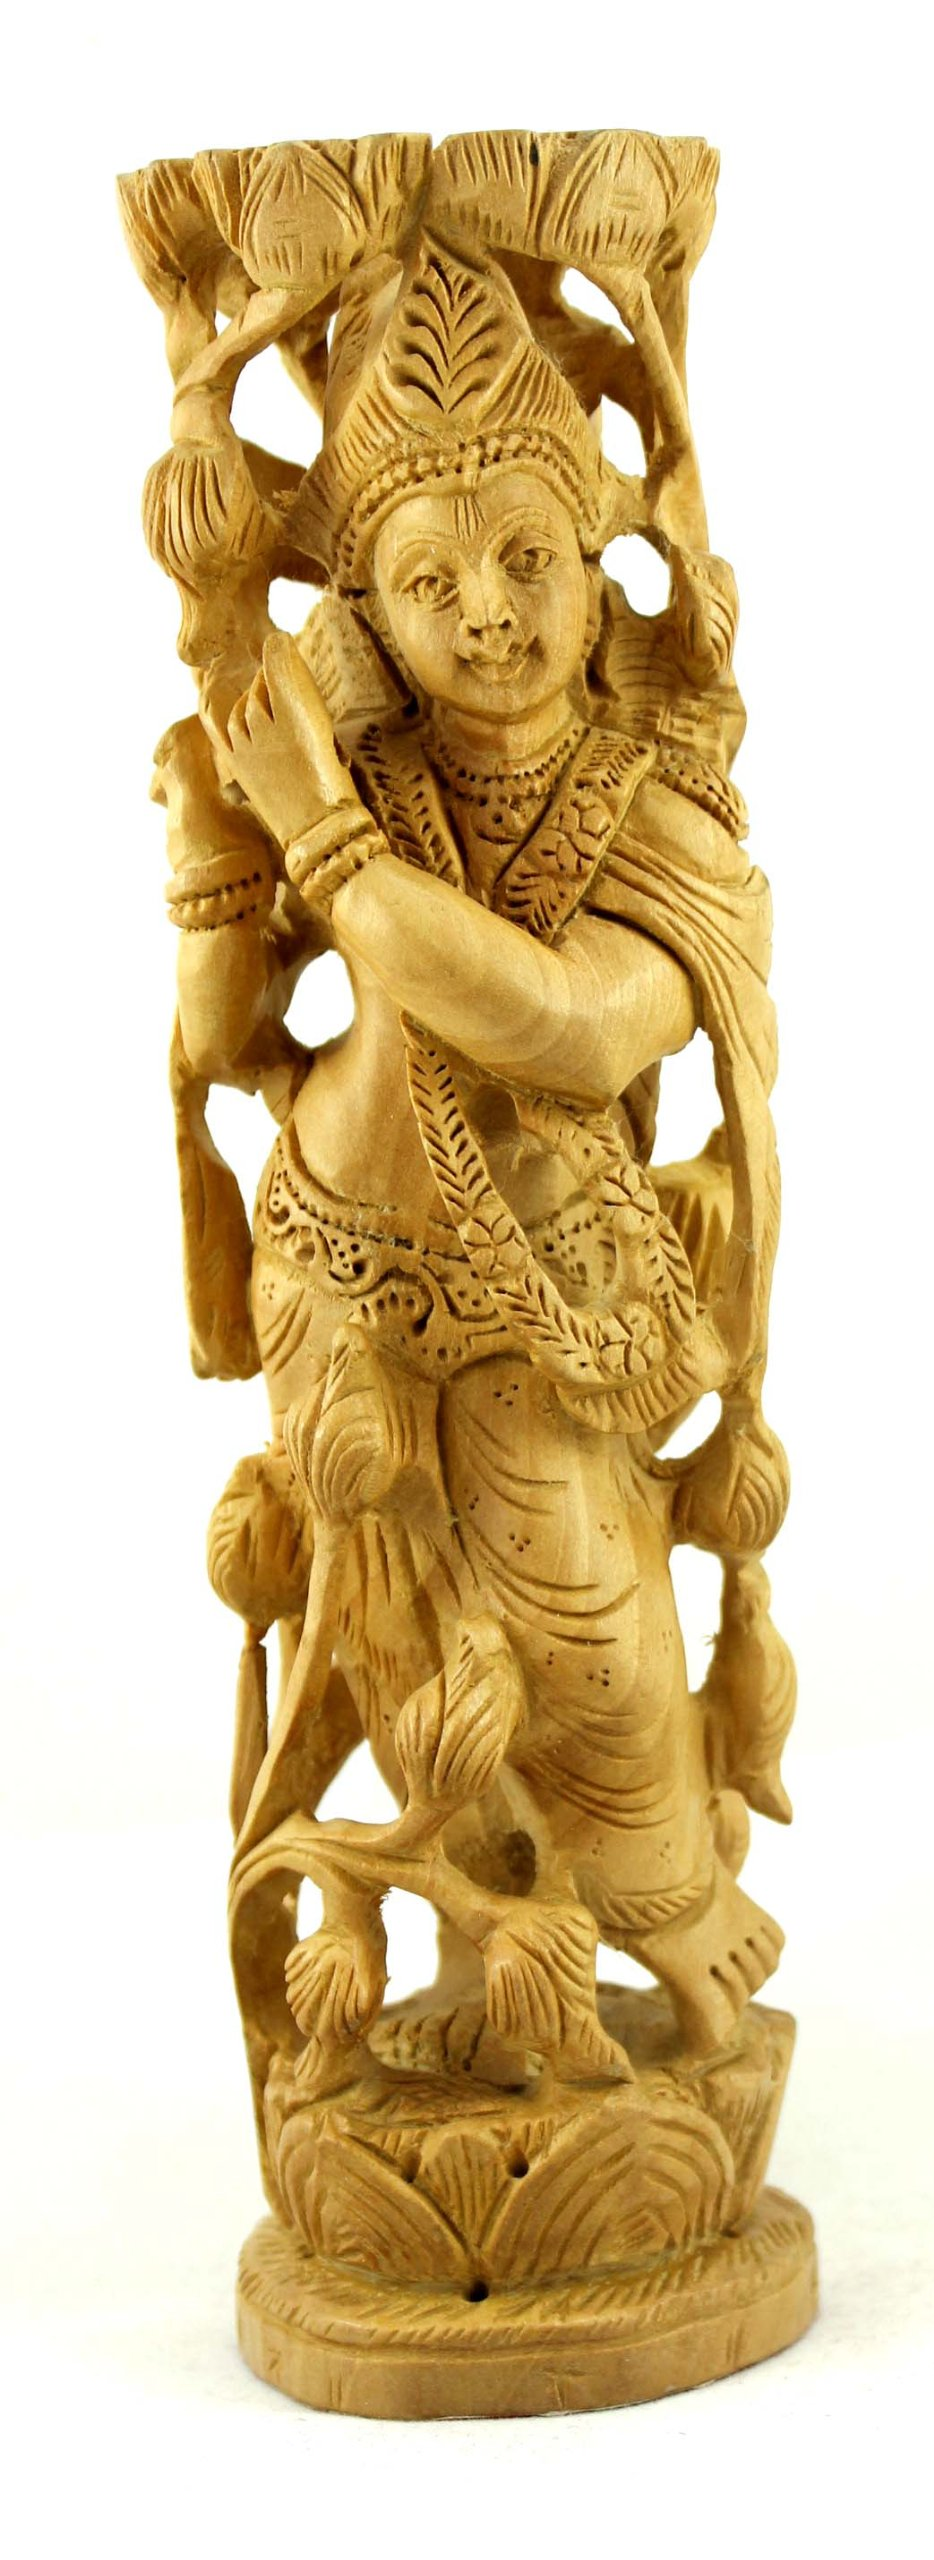 A Hand Carved Natural Wooden Lord Krishna Statue 8 inches